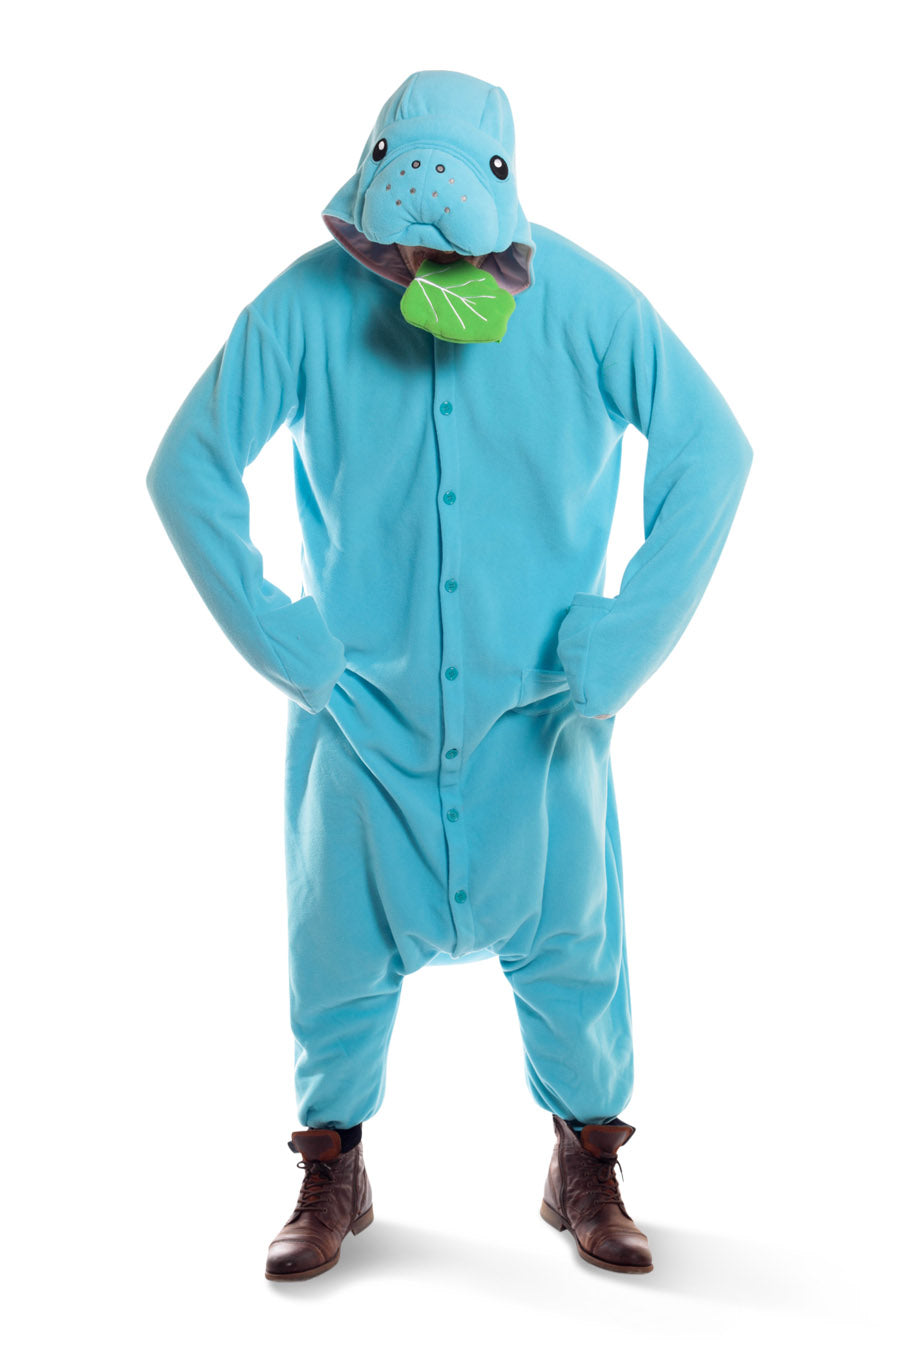 Manatee X-Tall Animal Kigurumi Adult Onesie Costume Pajamas Blue Main